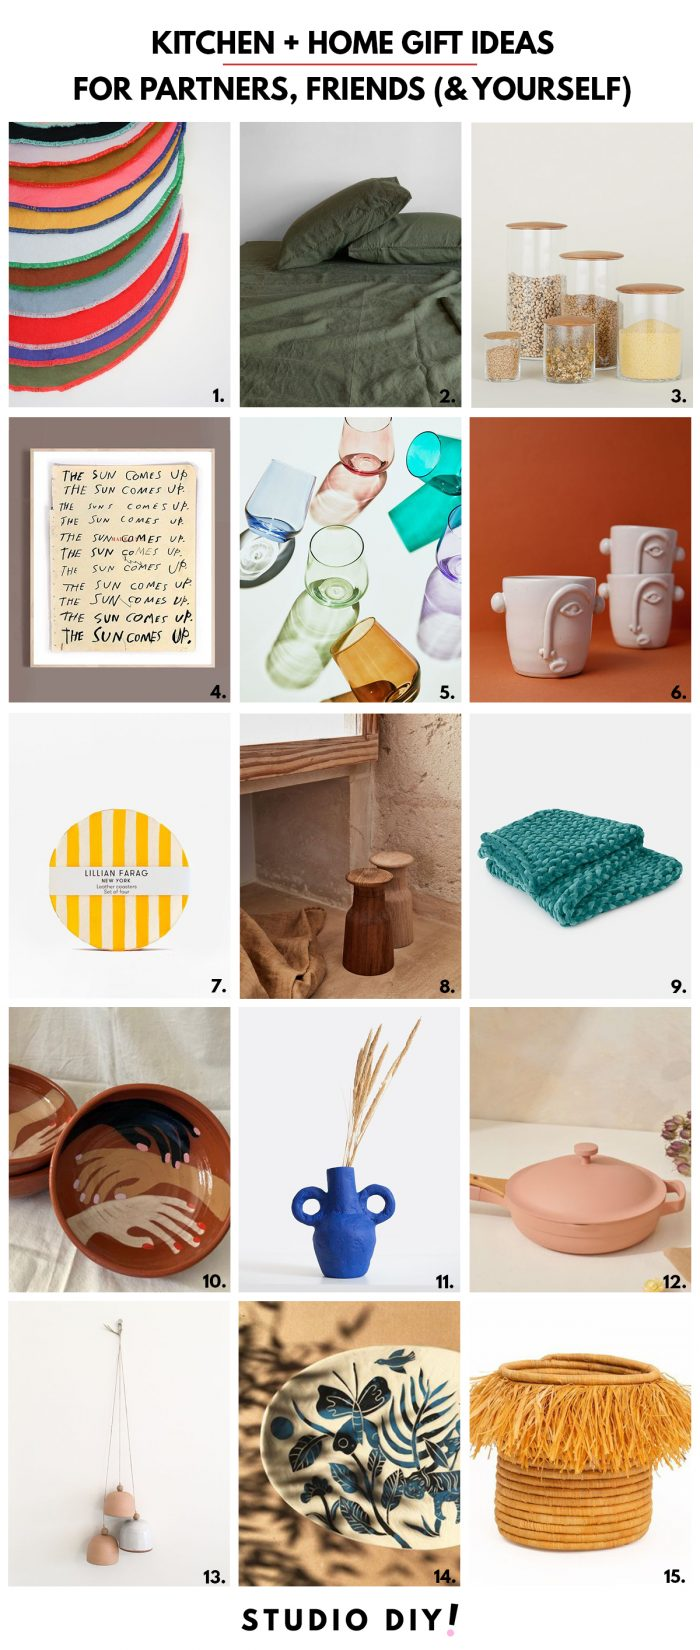 Home & Kitchen Gift Ideas from Small Businesses